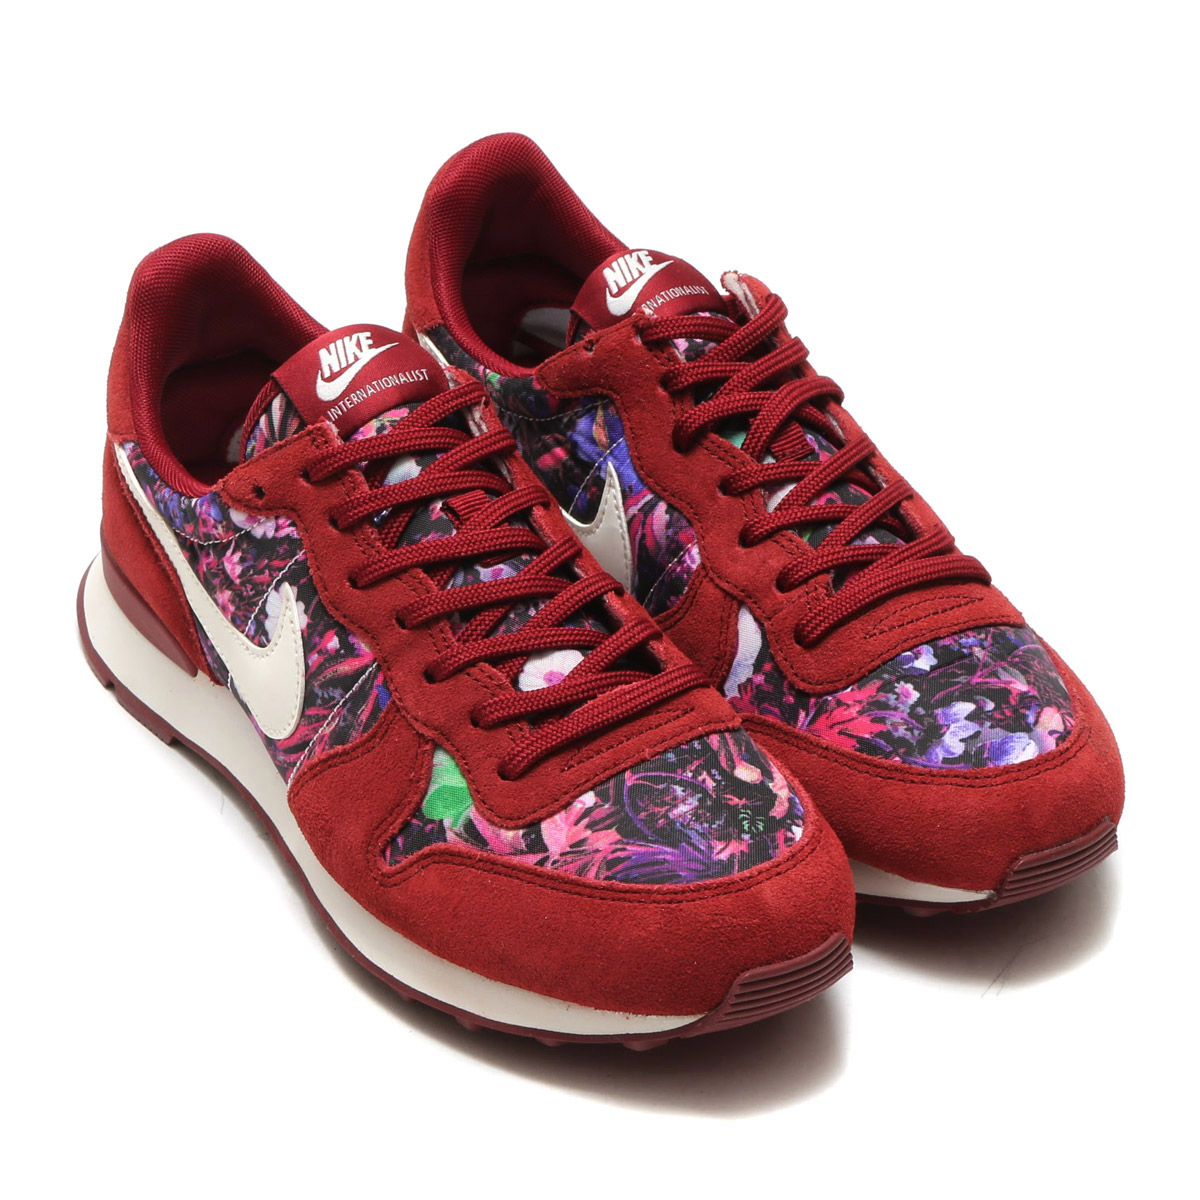 size 40 a2fa2 043e7 ... NIKE WMNS INTERNATIONALIST PRM (Nike women internationalist premium)  TEAM REDSAIL-TEAM ...